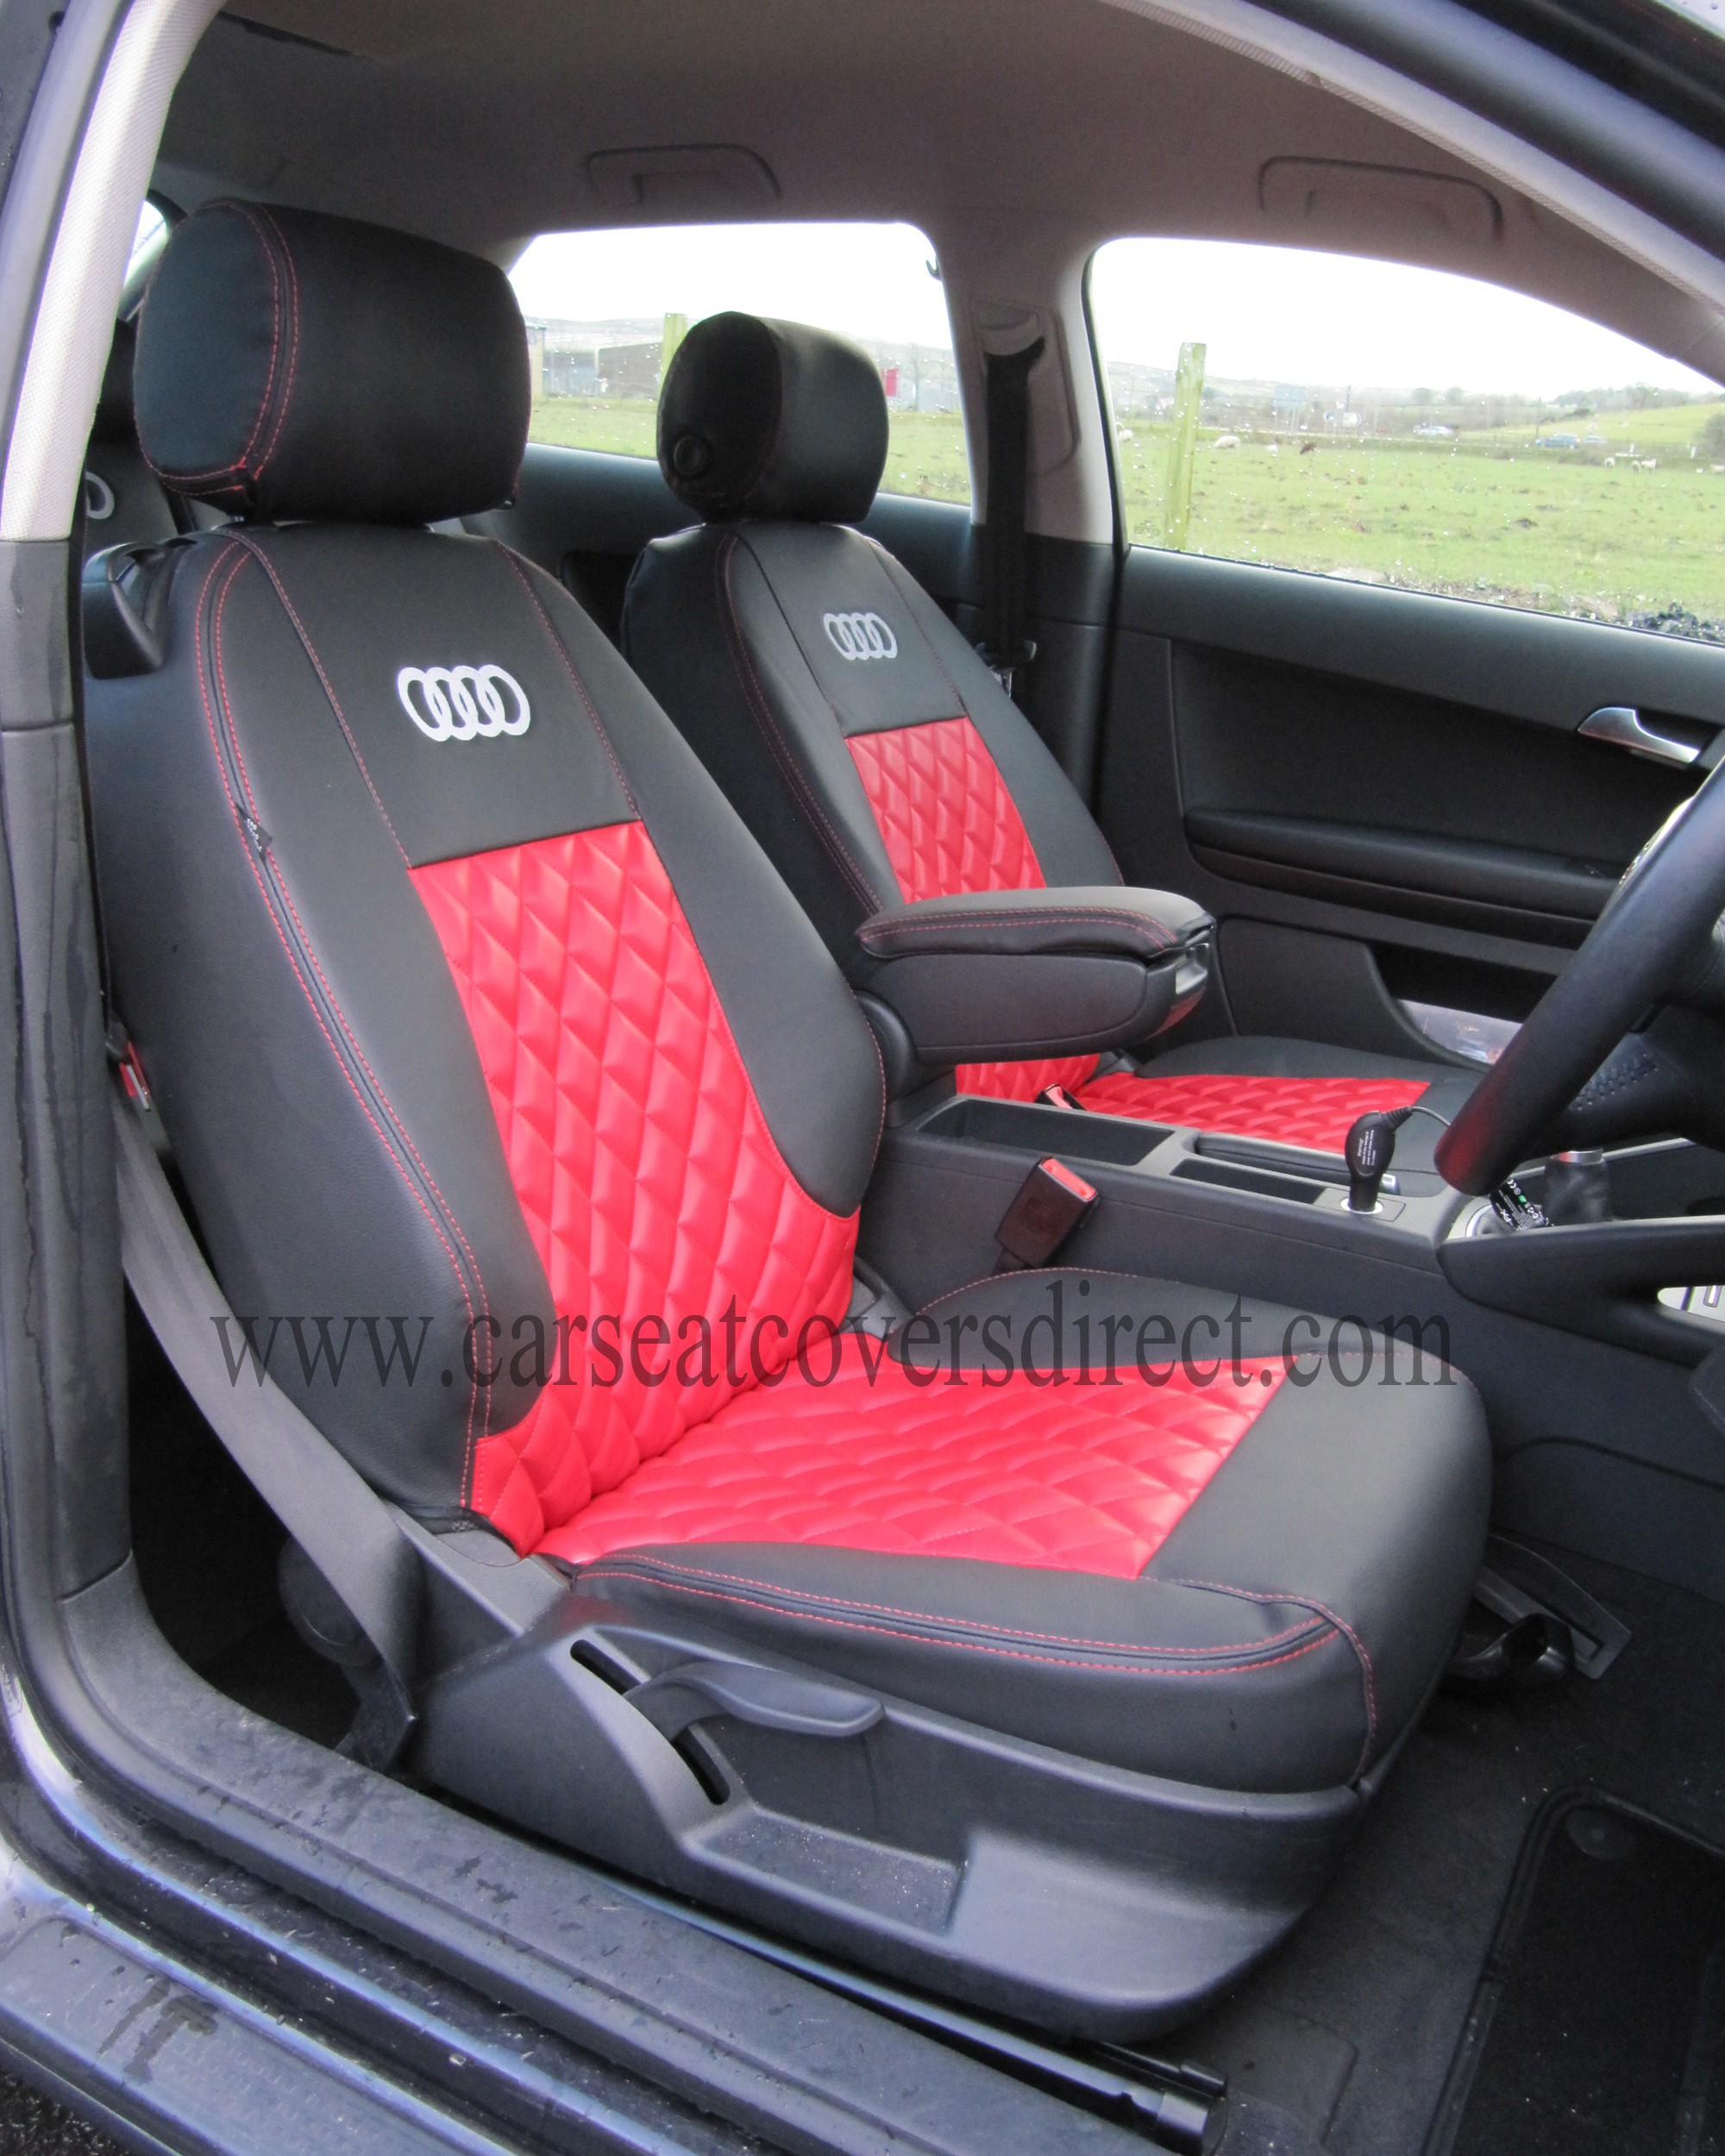 Audi A3 Seat Covers Black Amp Red With Diamond Stitching